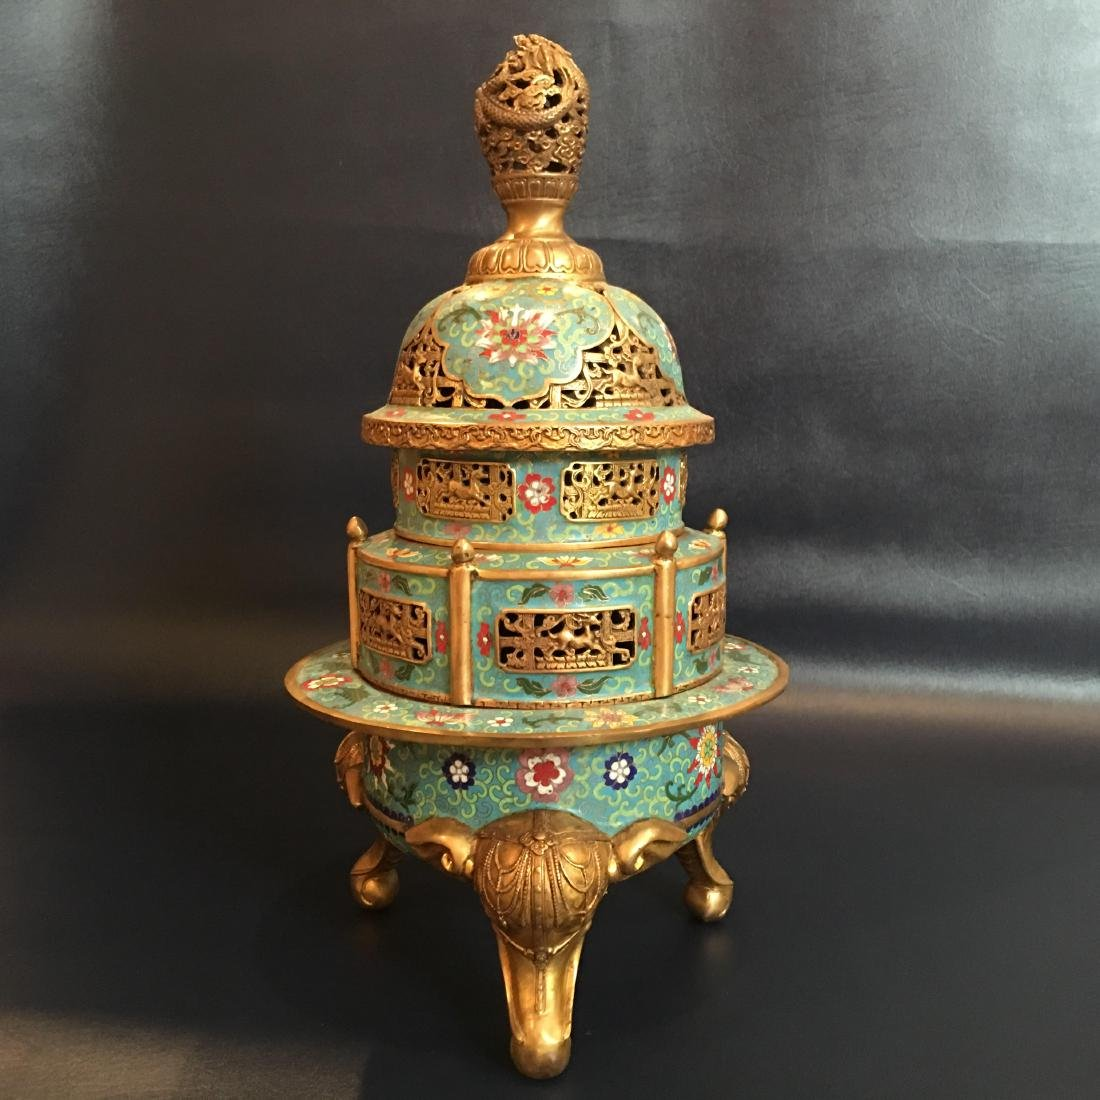 A Cloisonne Enamel Hollowing Censer